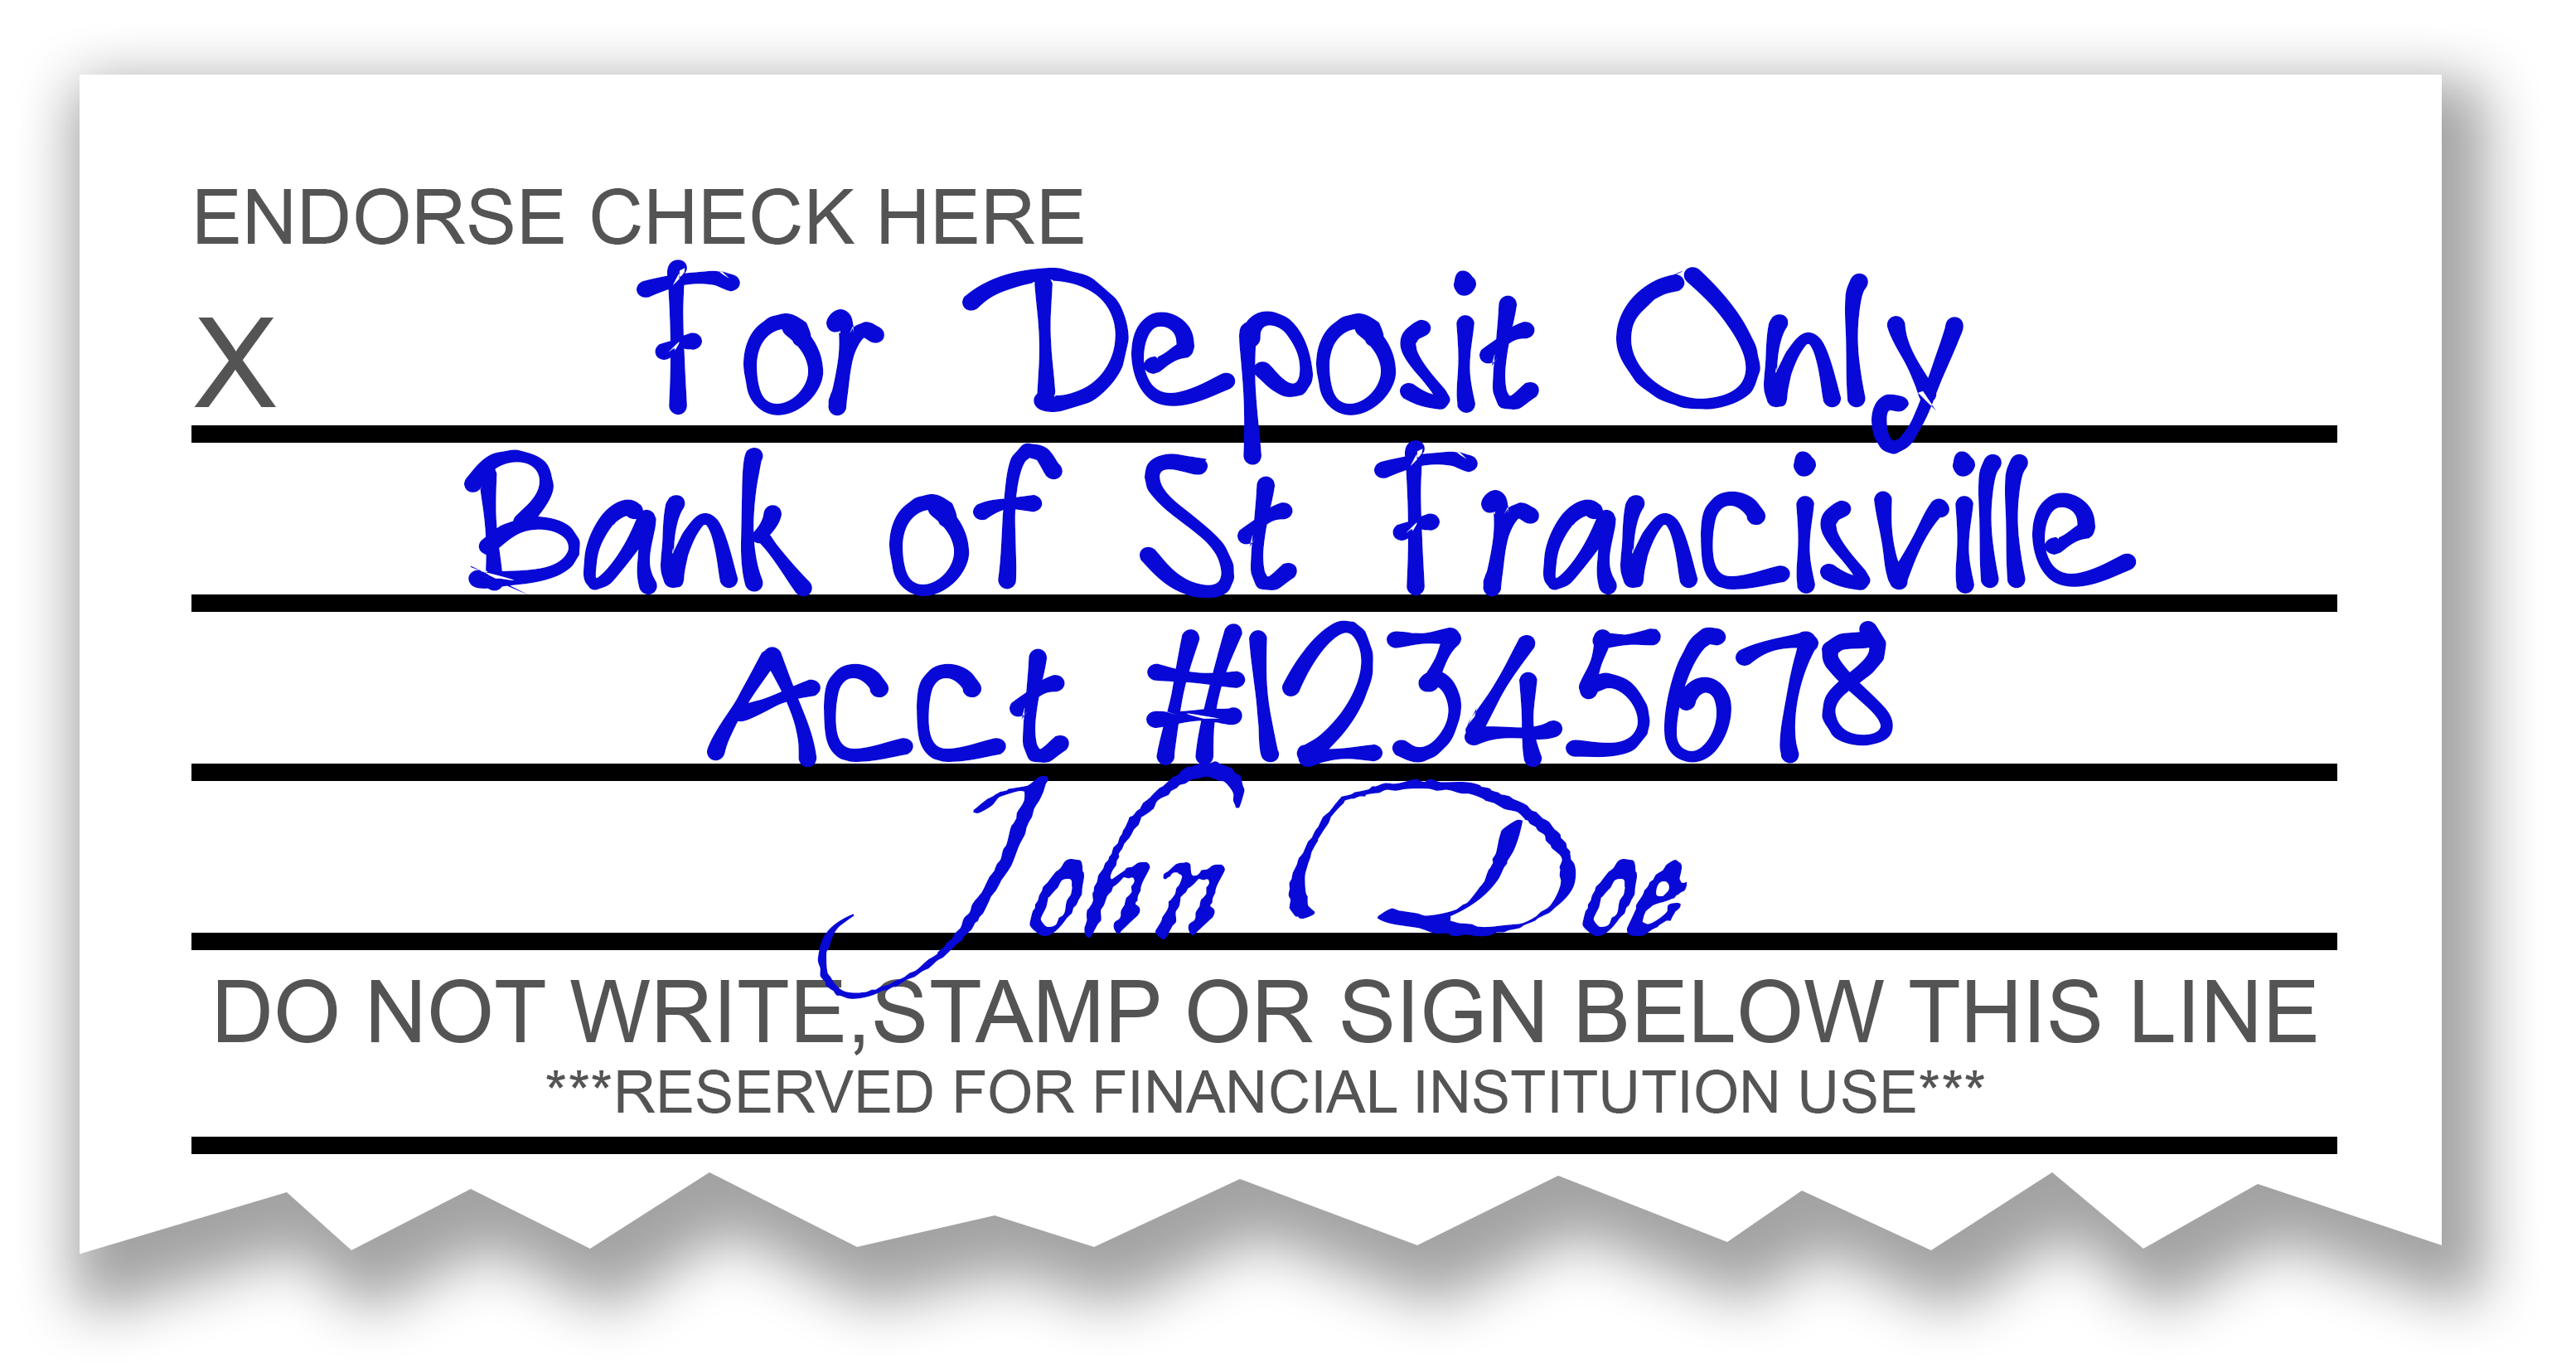 Mobile deposit bank of st francisville personal 1betcityfo Gallery